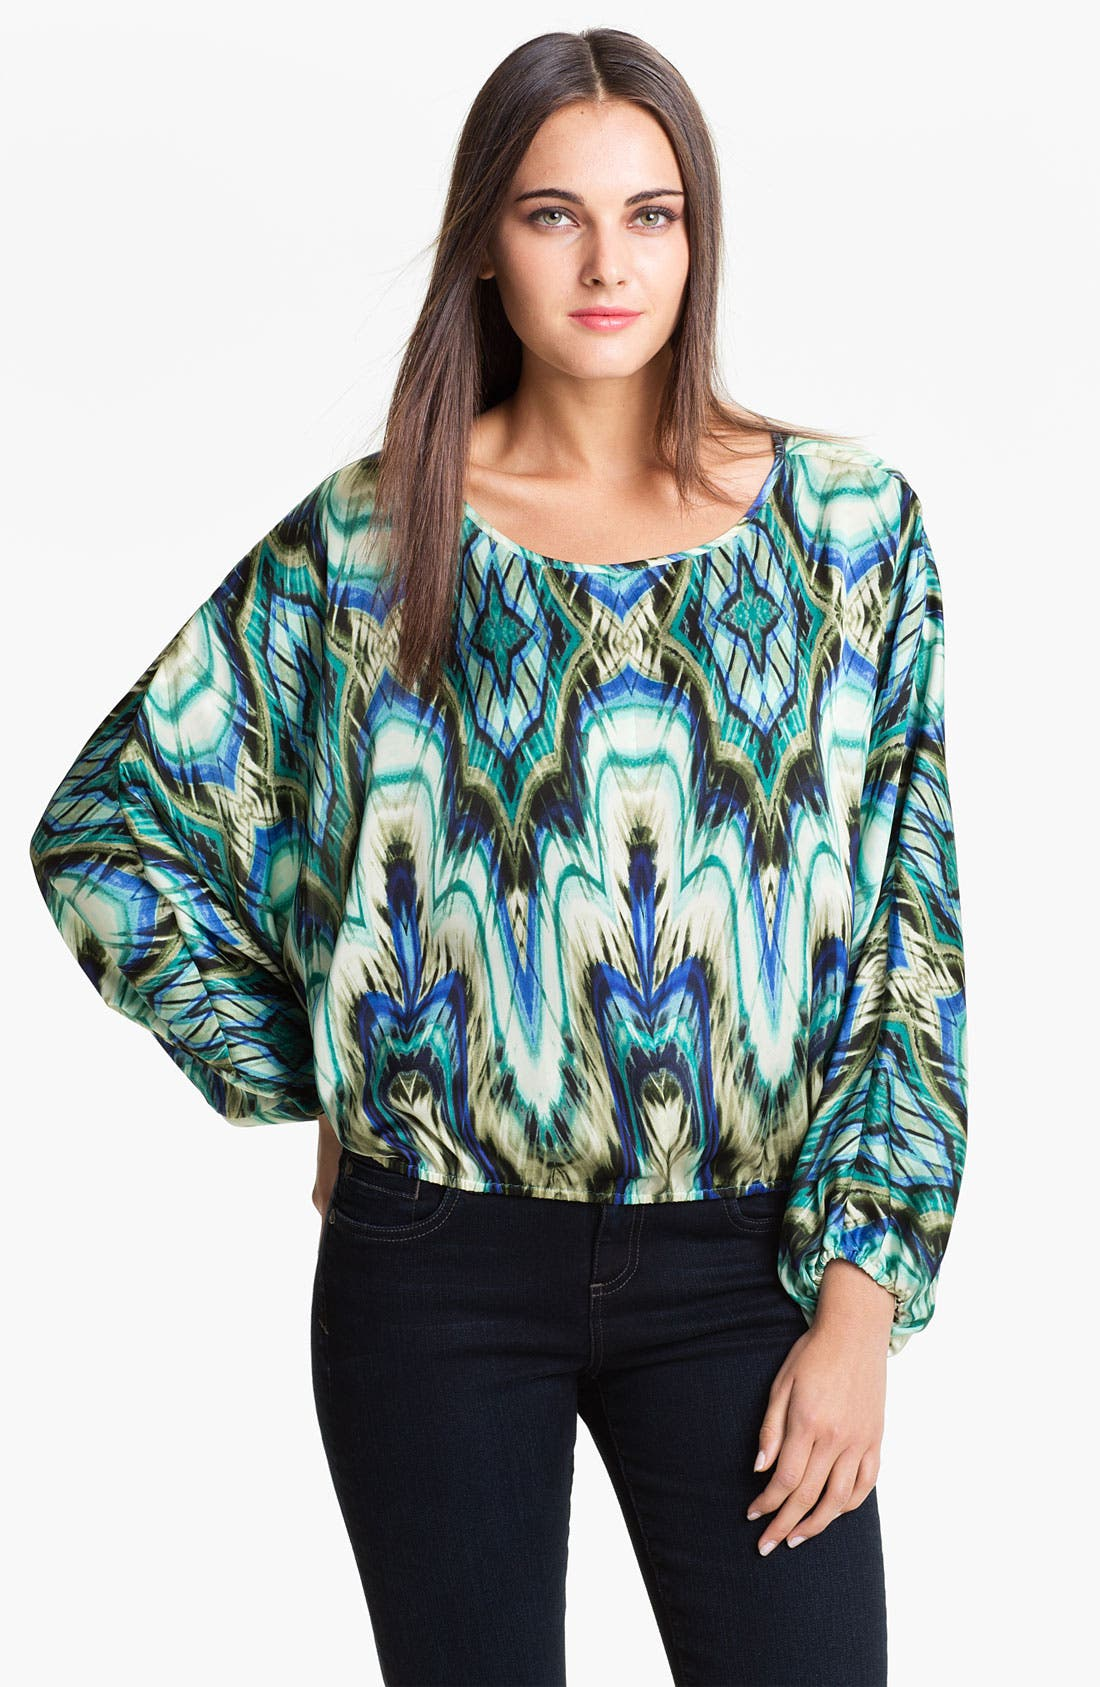 Alternate Image 1 Selected - Vince Camuto Abstract Print Peasant Blouse